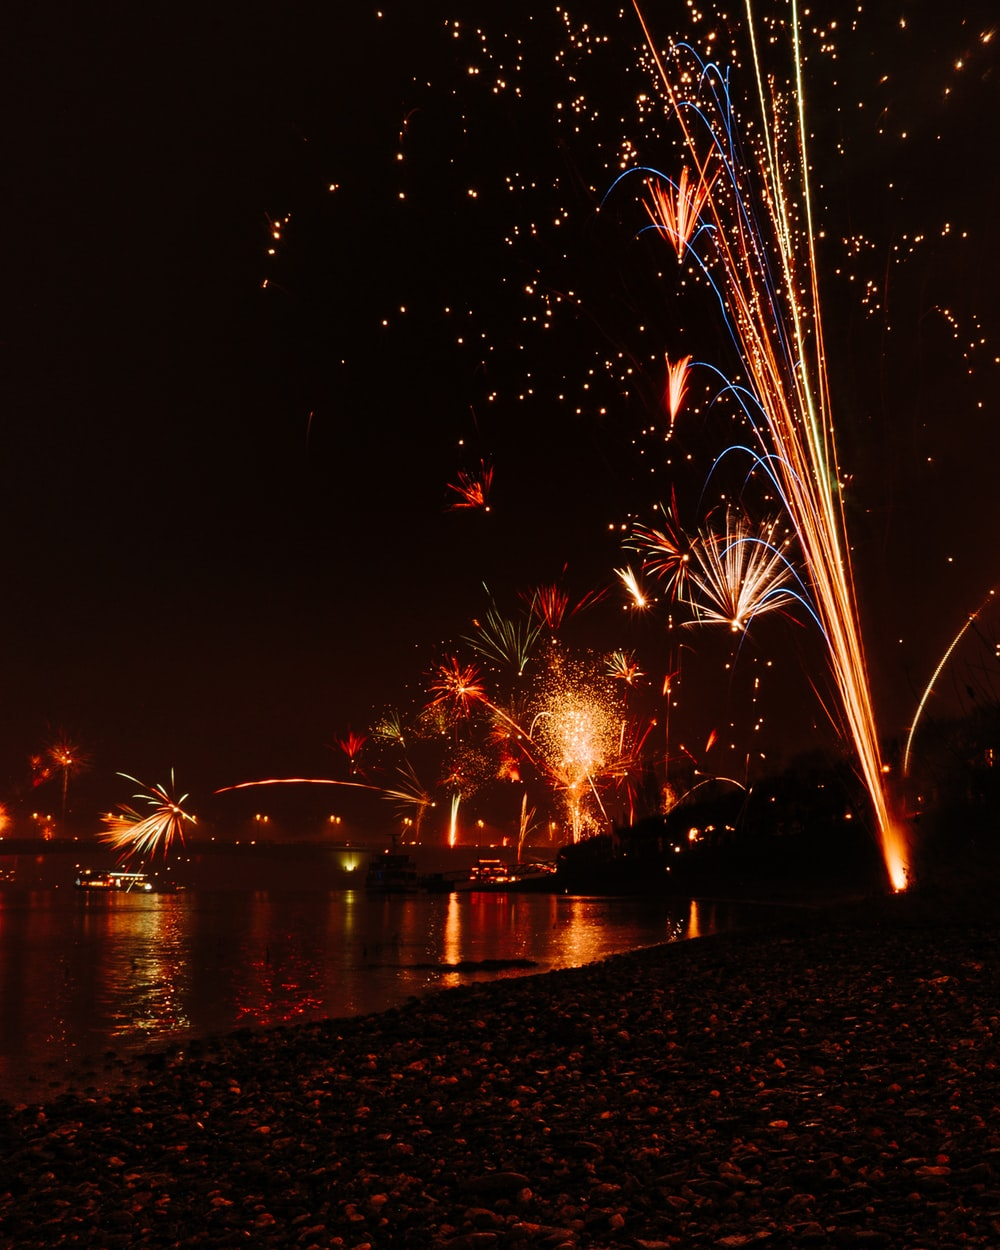 time-lapse photography of fireworks bursting in the sky during nighttime